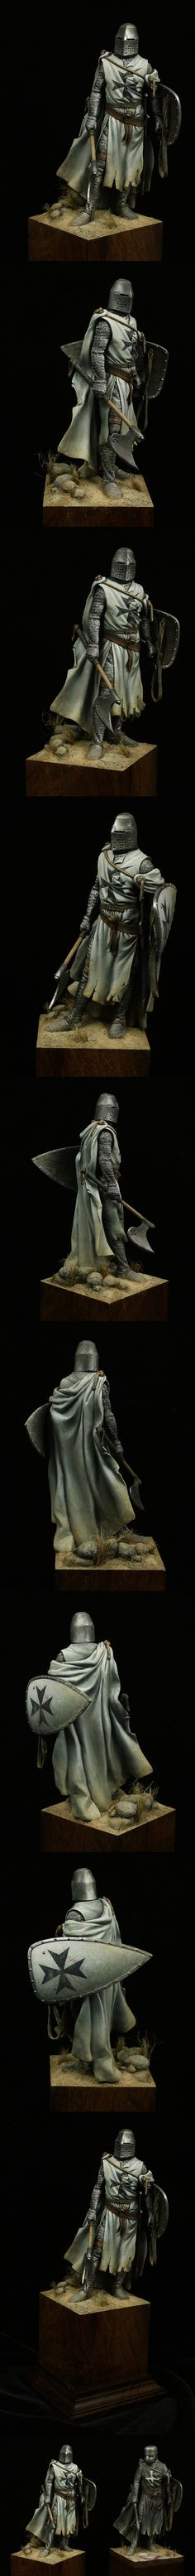 The Internet's largest gallery of painted miniatures, with a large repository of how-to articles on miniature painting Knight In Shining Armor, Knight Armor, Medieval Life, Medieval Knight, Fantasy Miniatures, Fantasy Armor, Chivalry, Knights Templar, Dark Ages